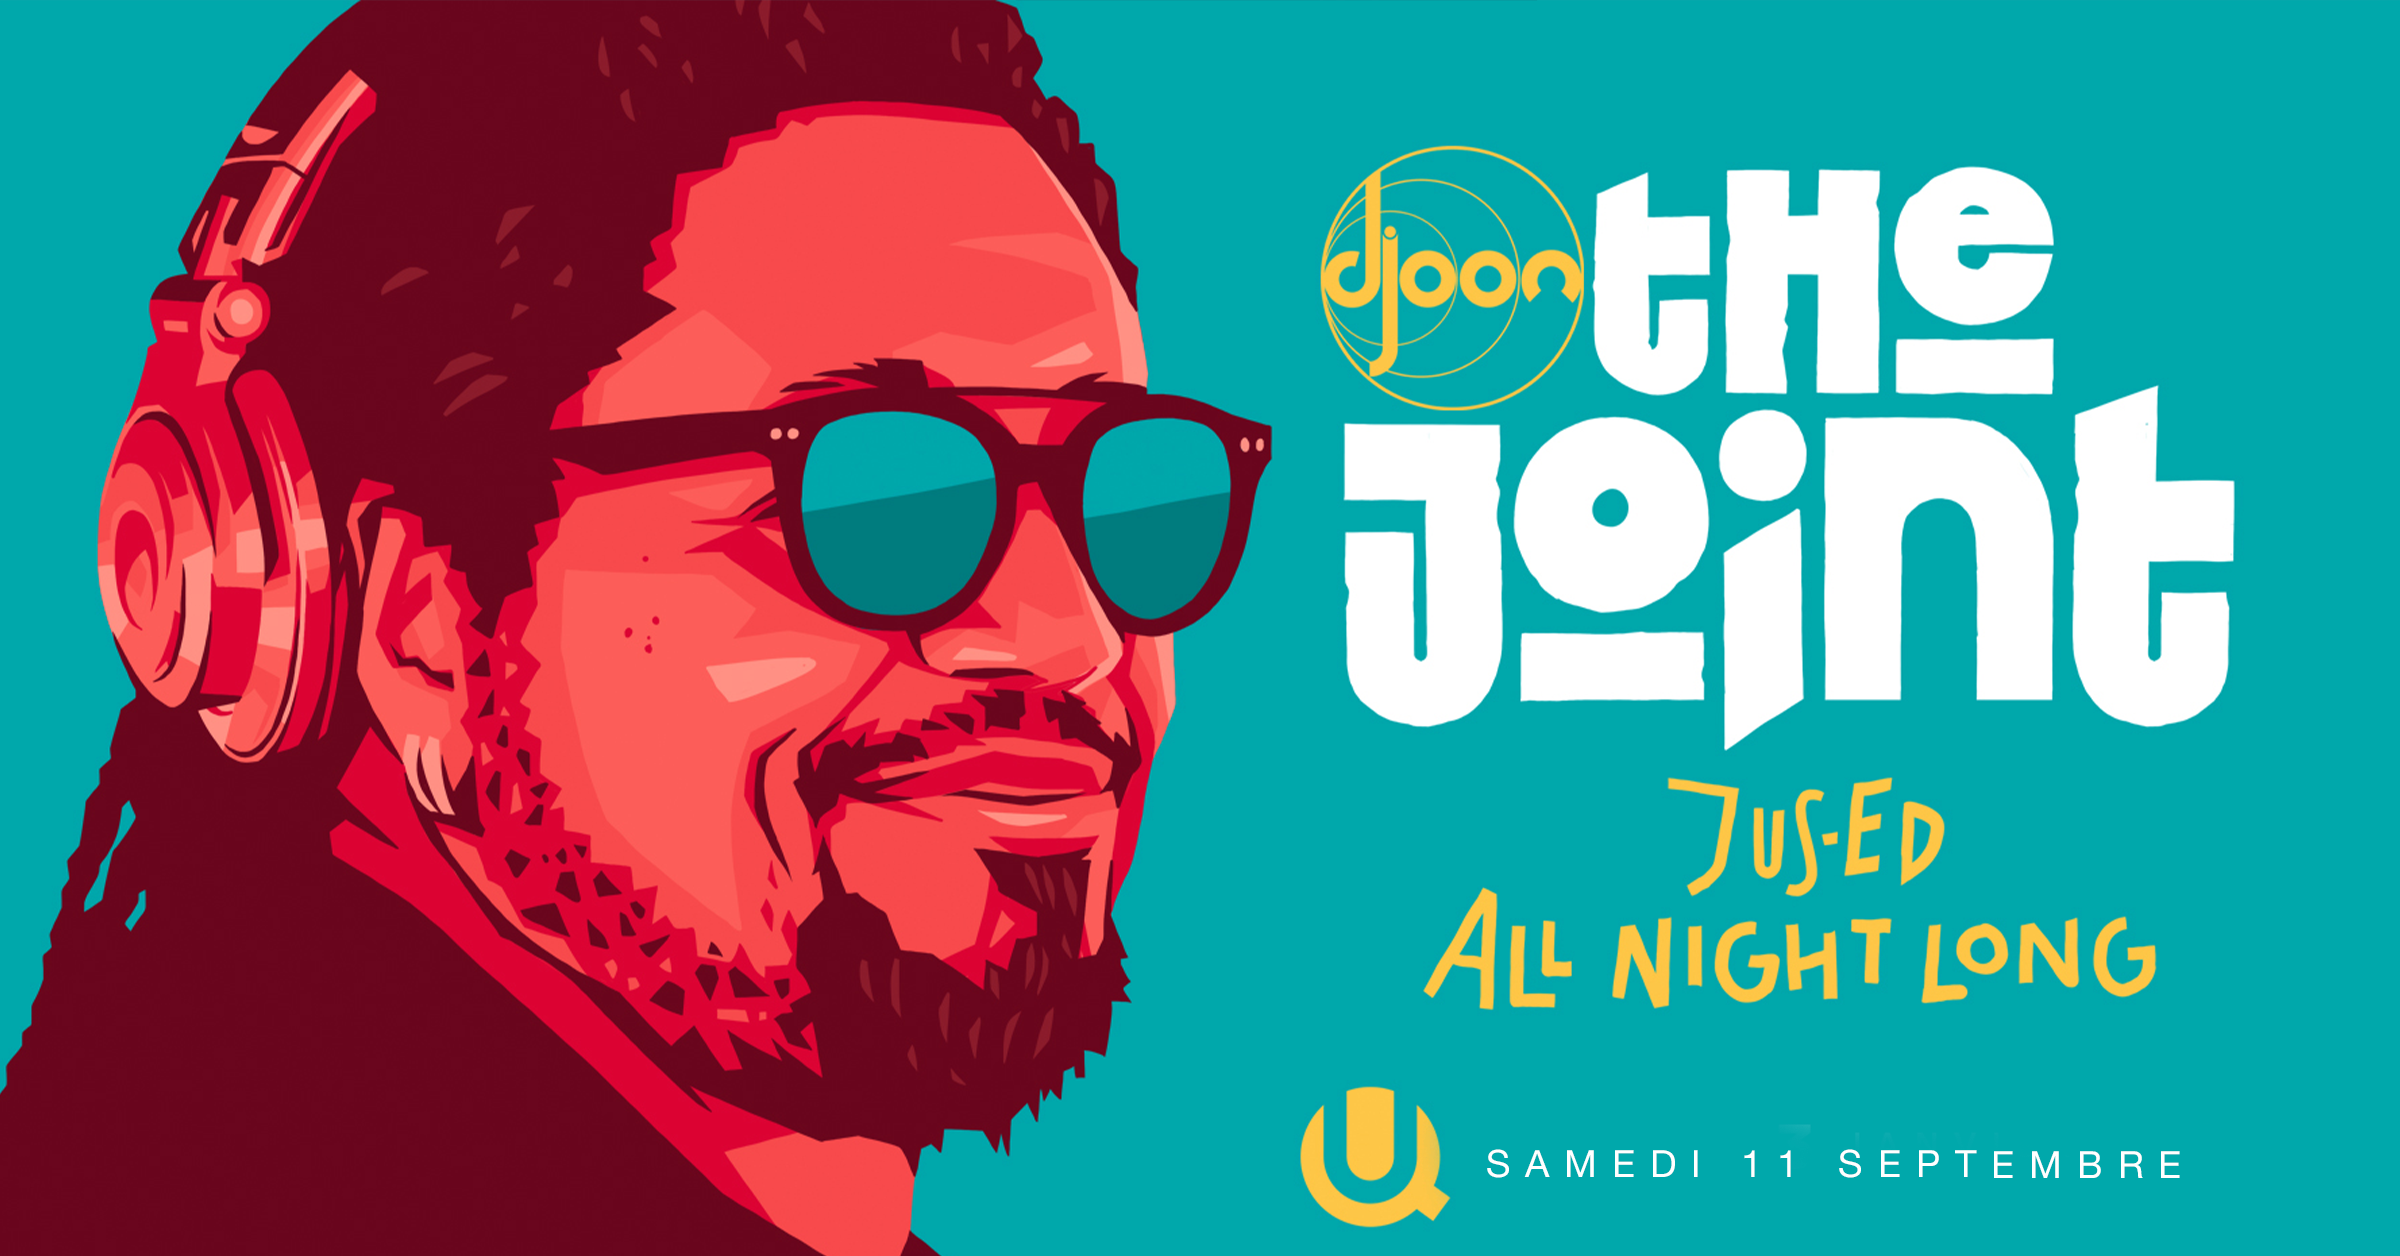 Djoon reopening: The Joint w/ Jus-Ed all night long